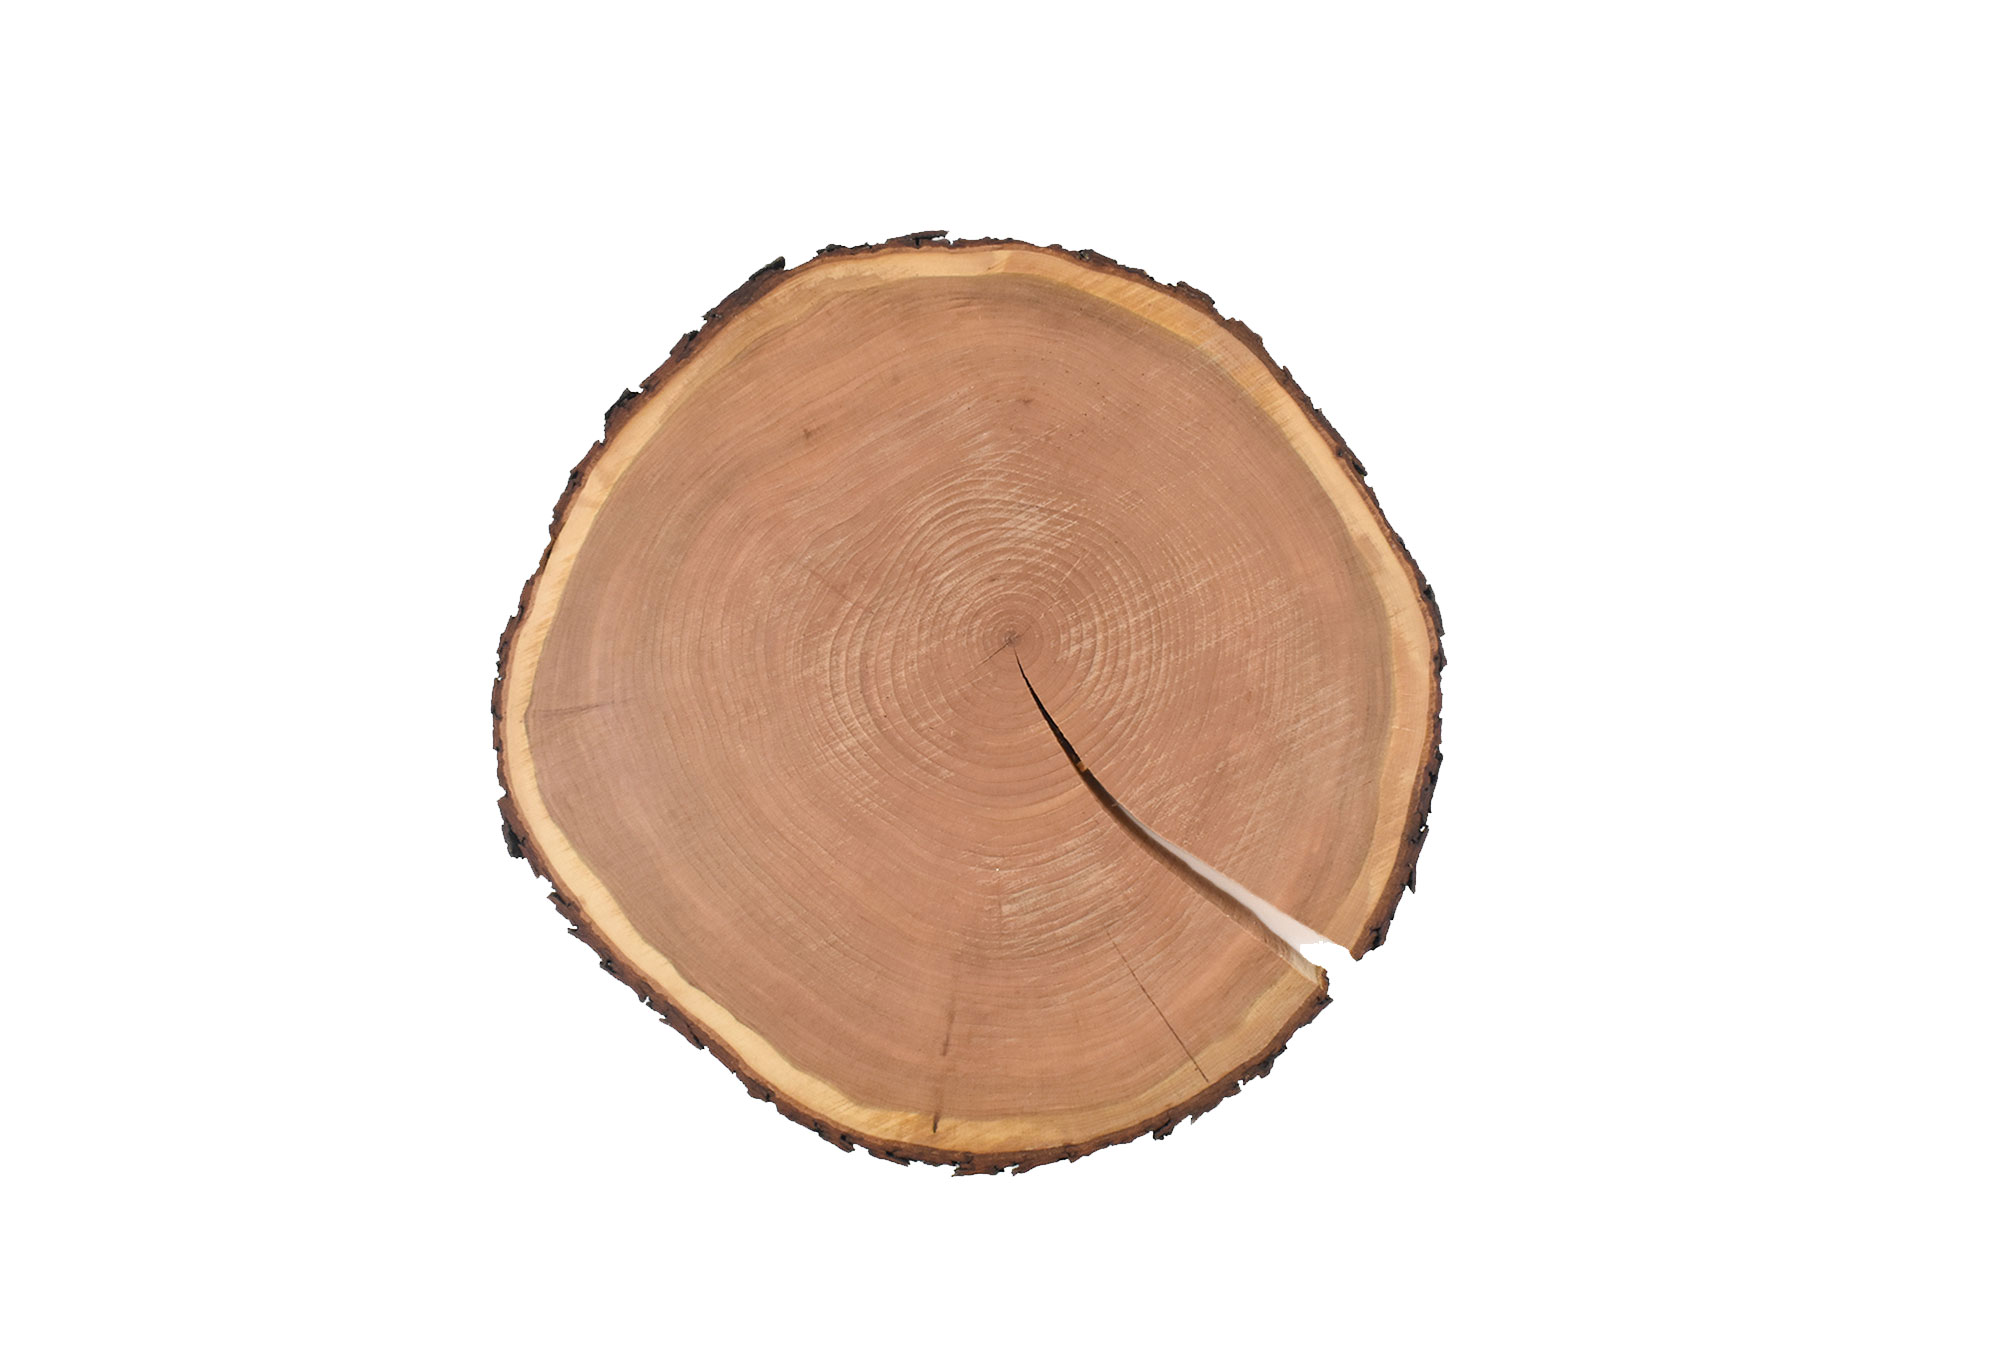 Rustic live edge large round wood cutting/serving board